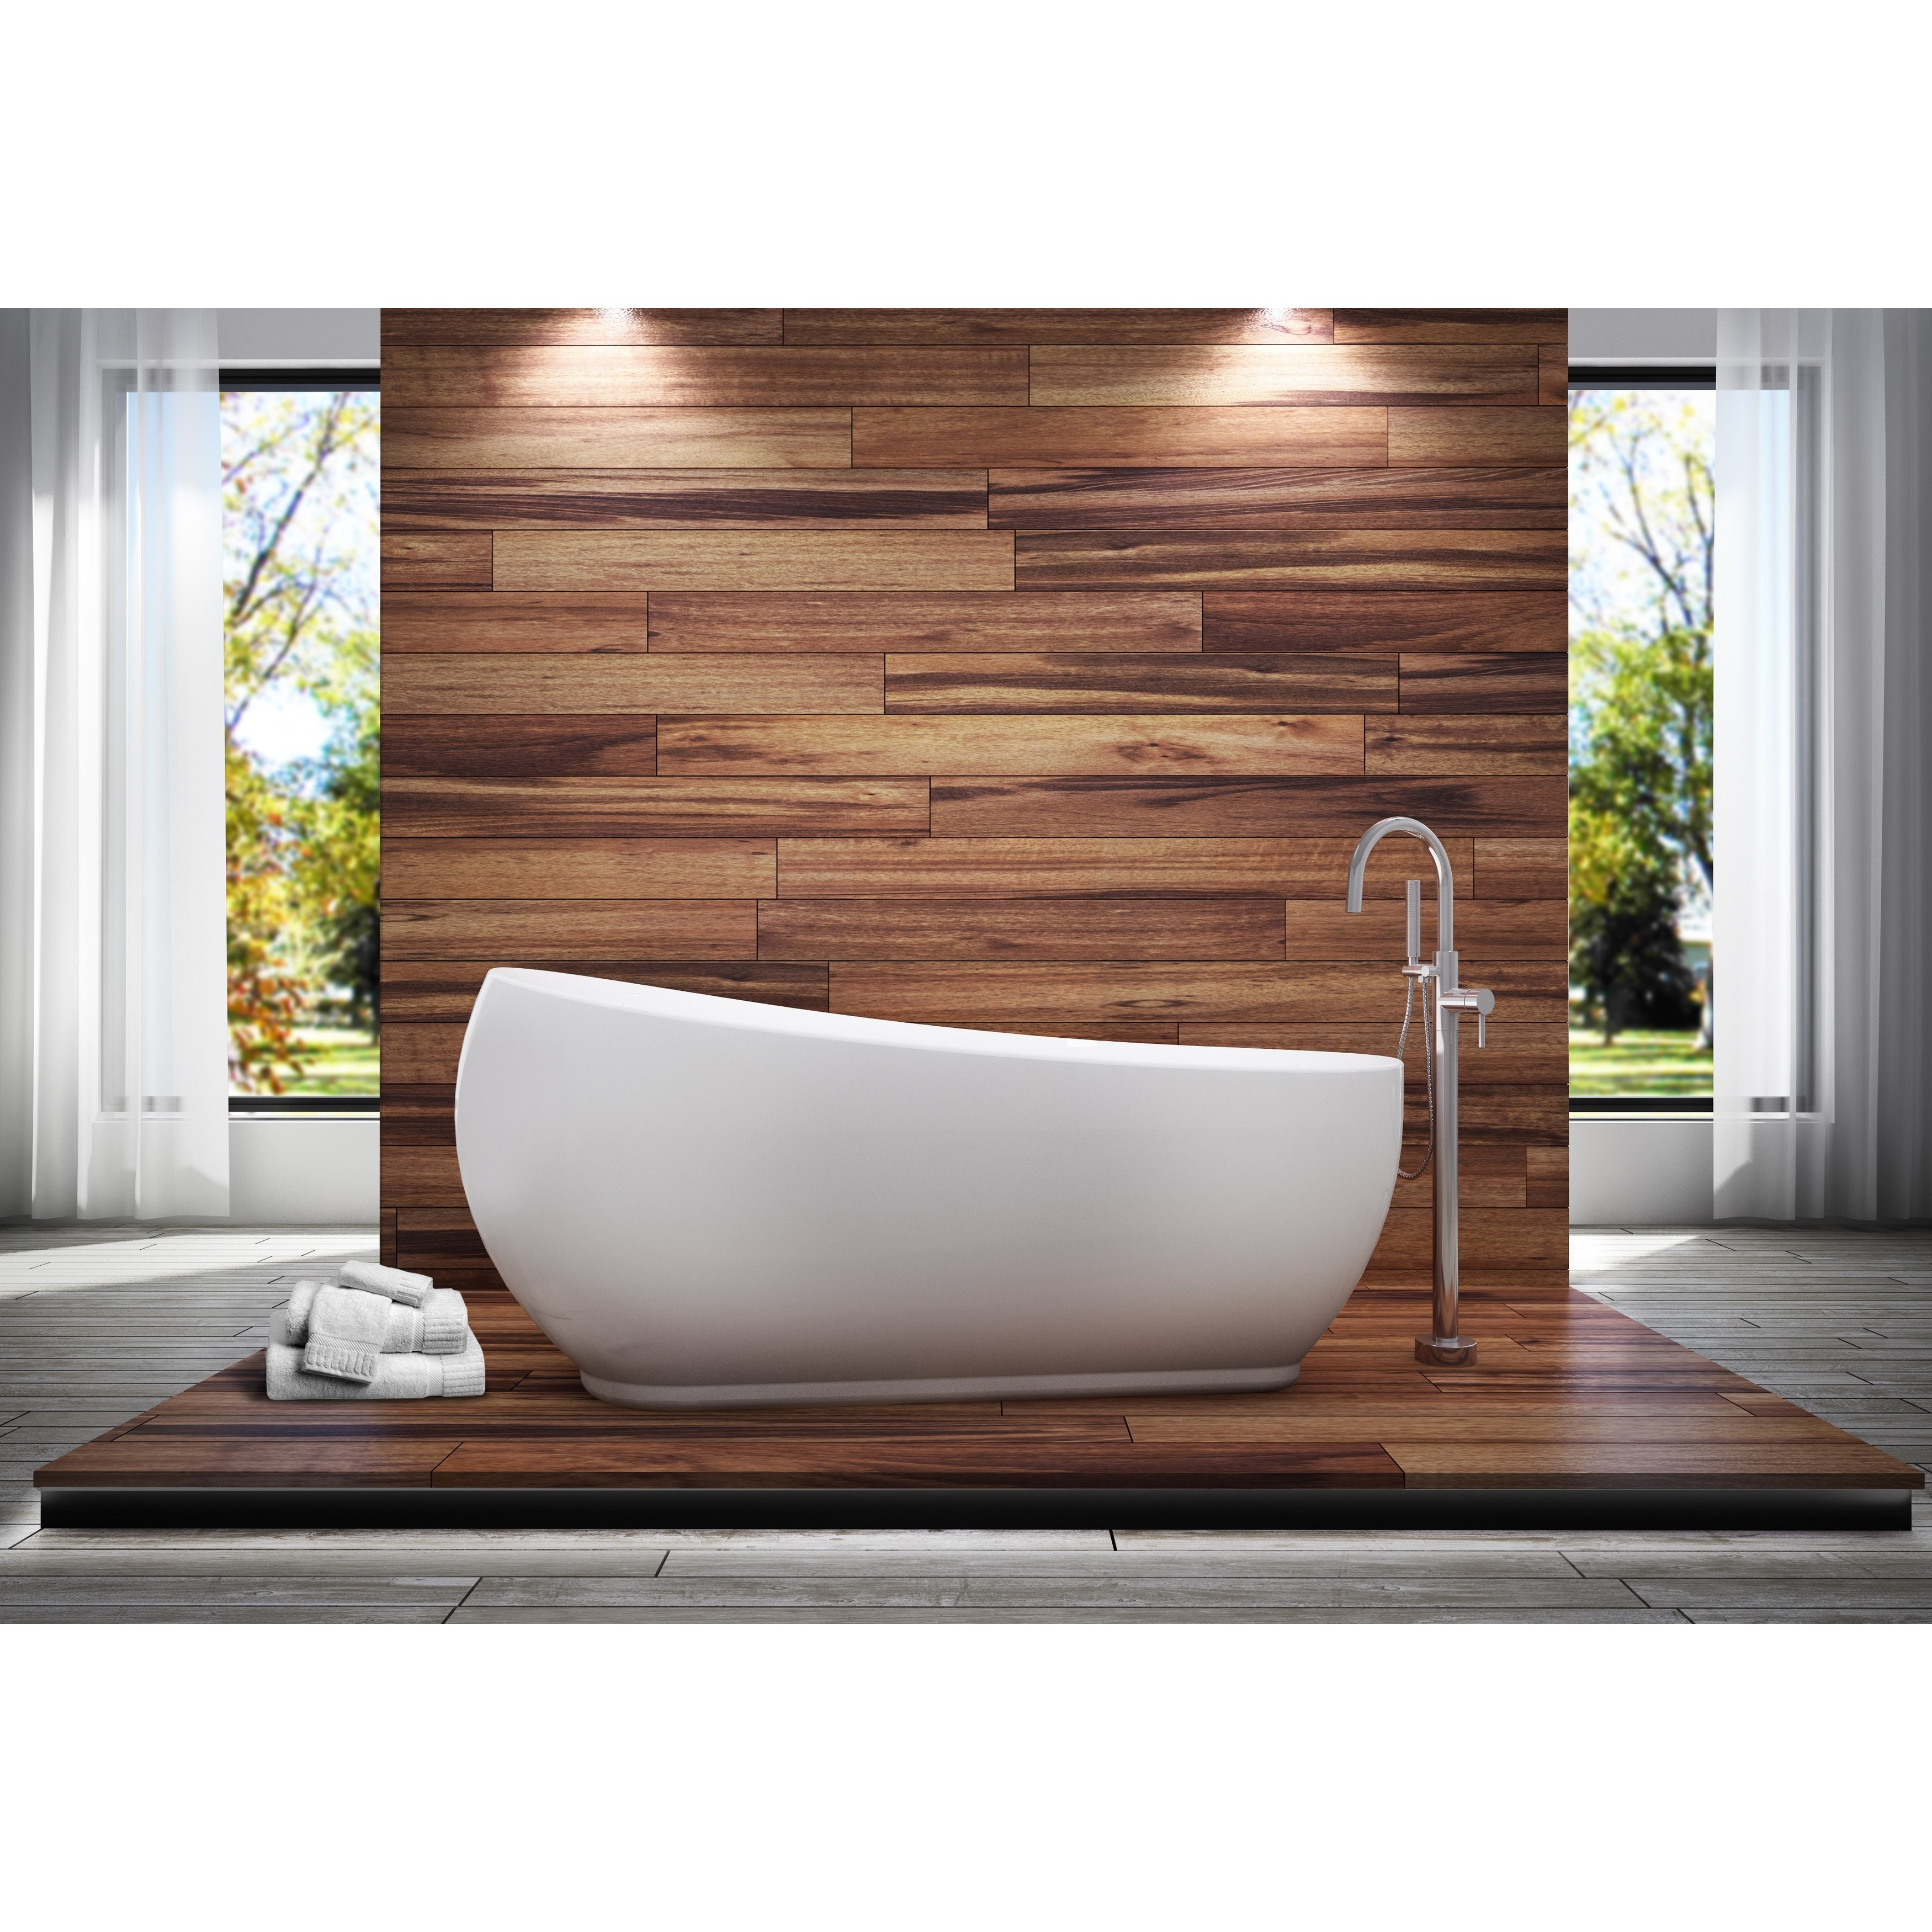 Oslo All-in-one Free-standing Tub Combo, White, Size 66 t...